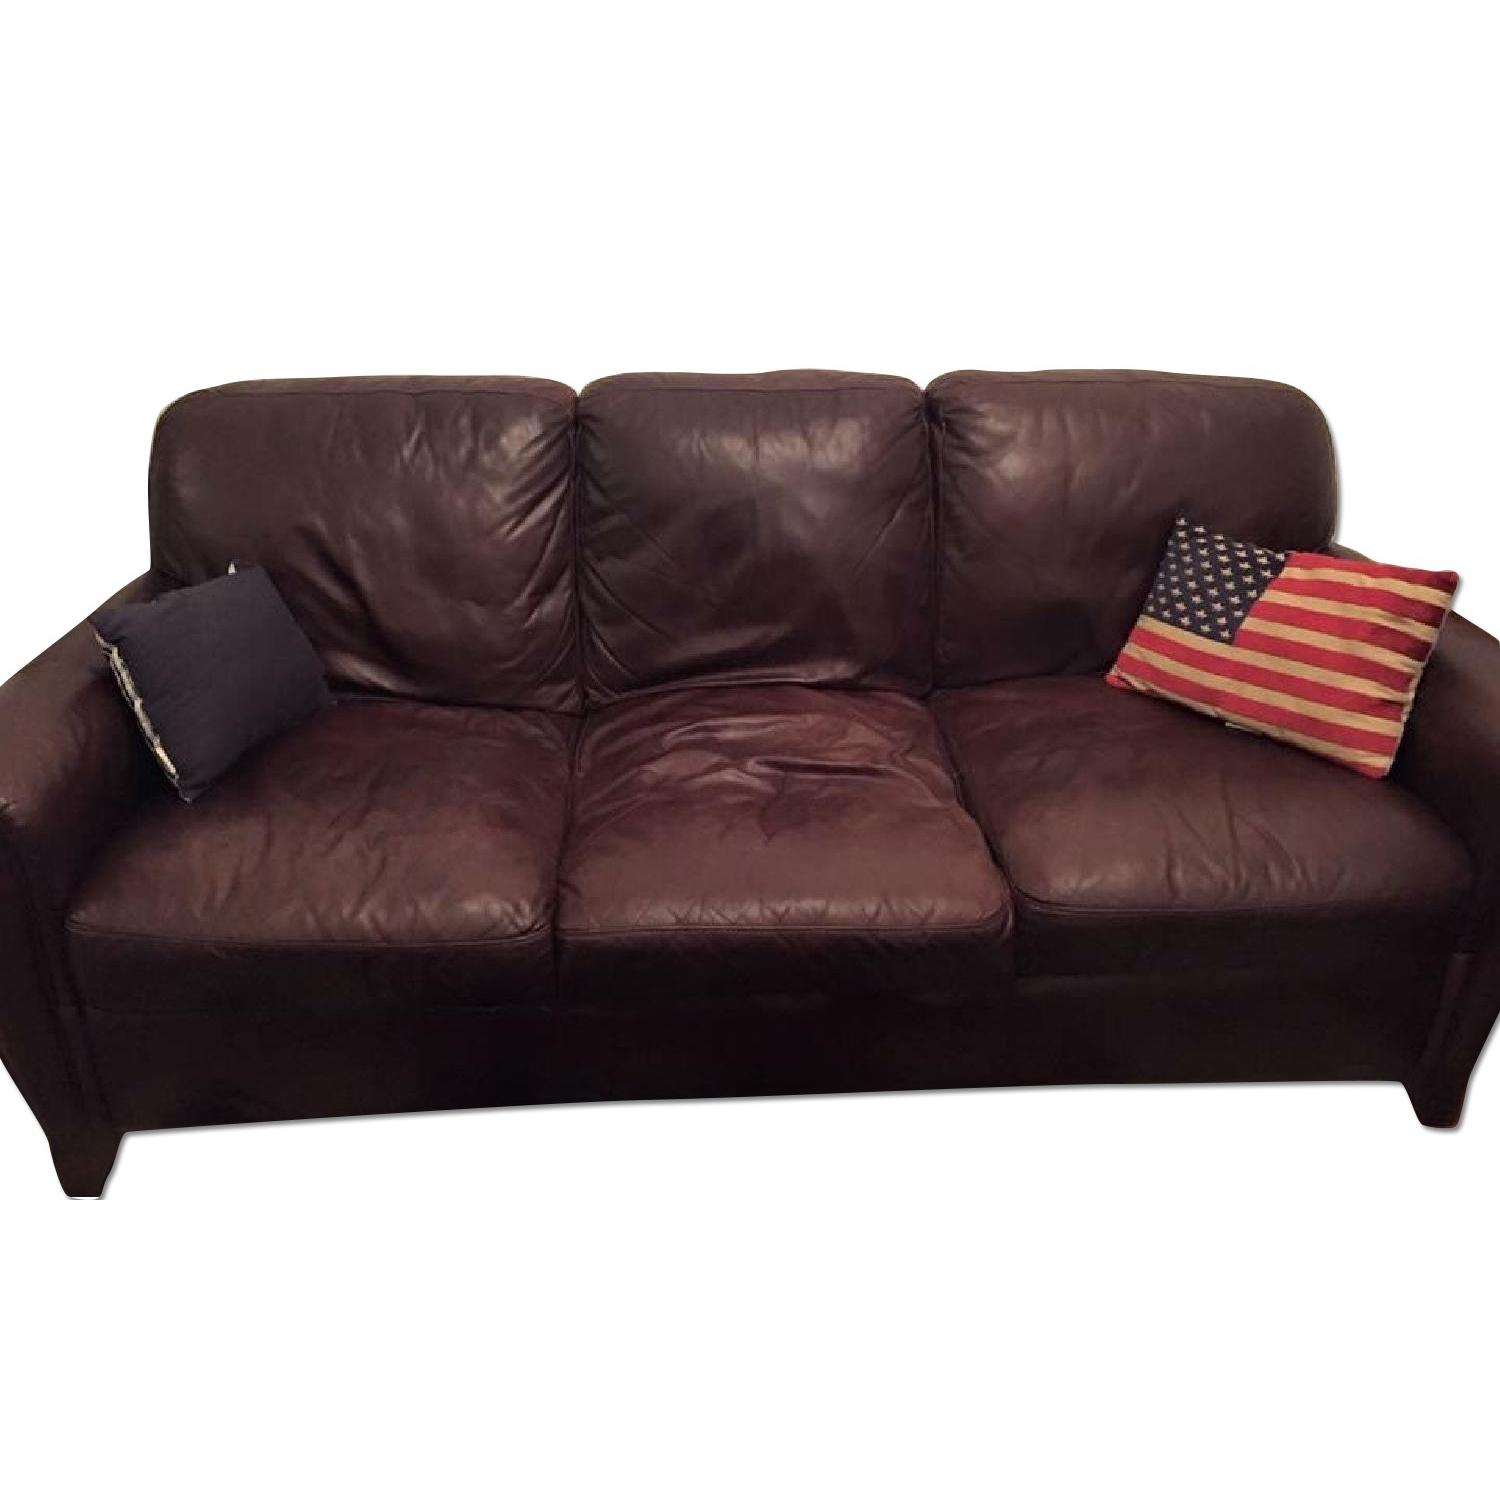 Raymour & Flanigan Jackson Leather Couch - image-0